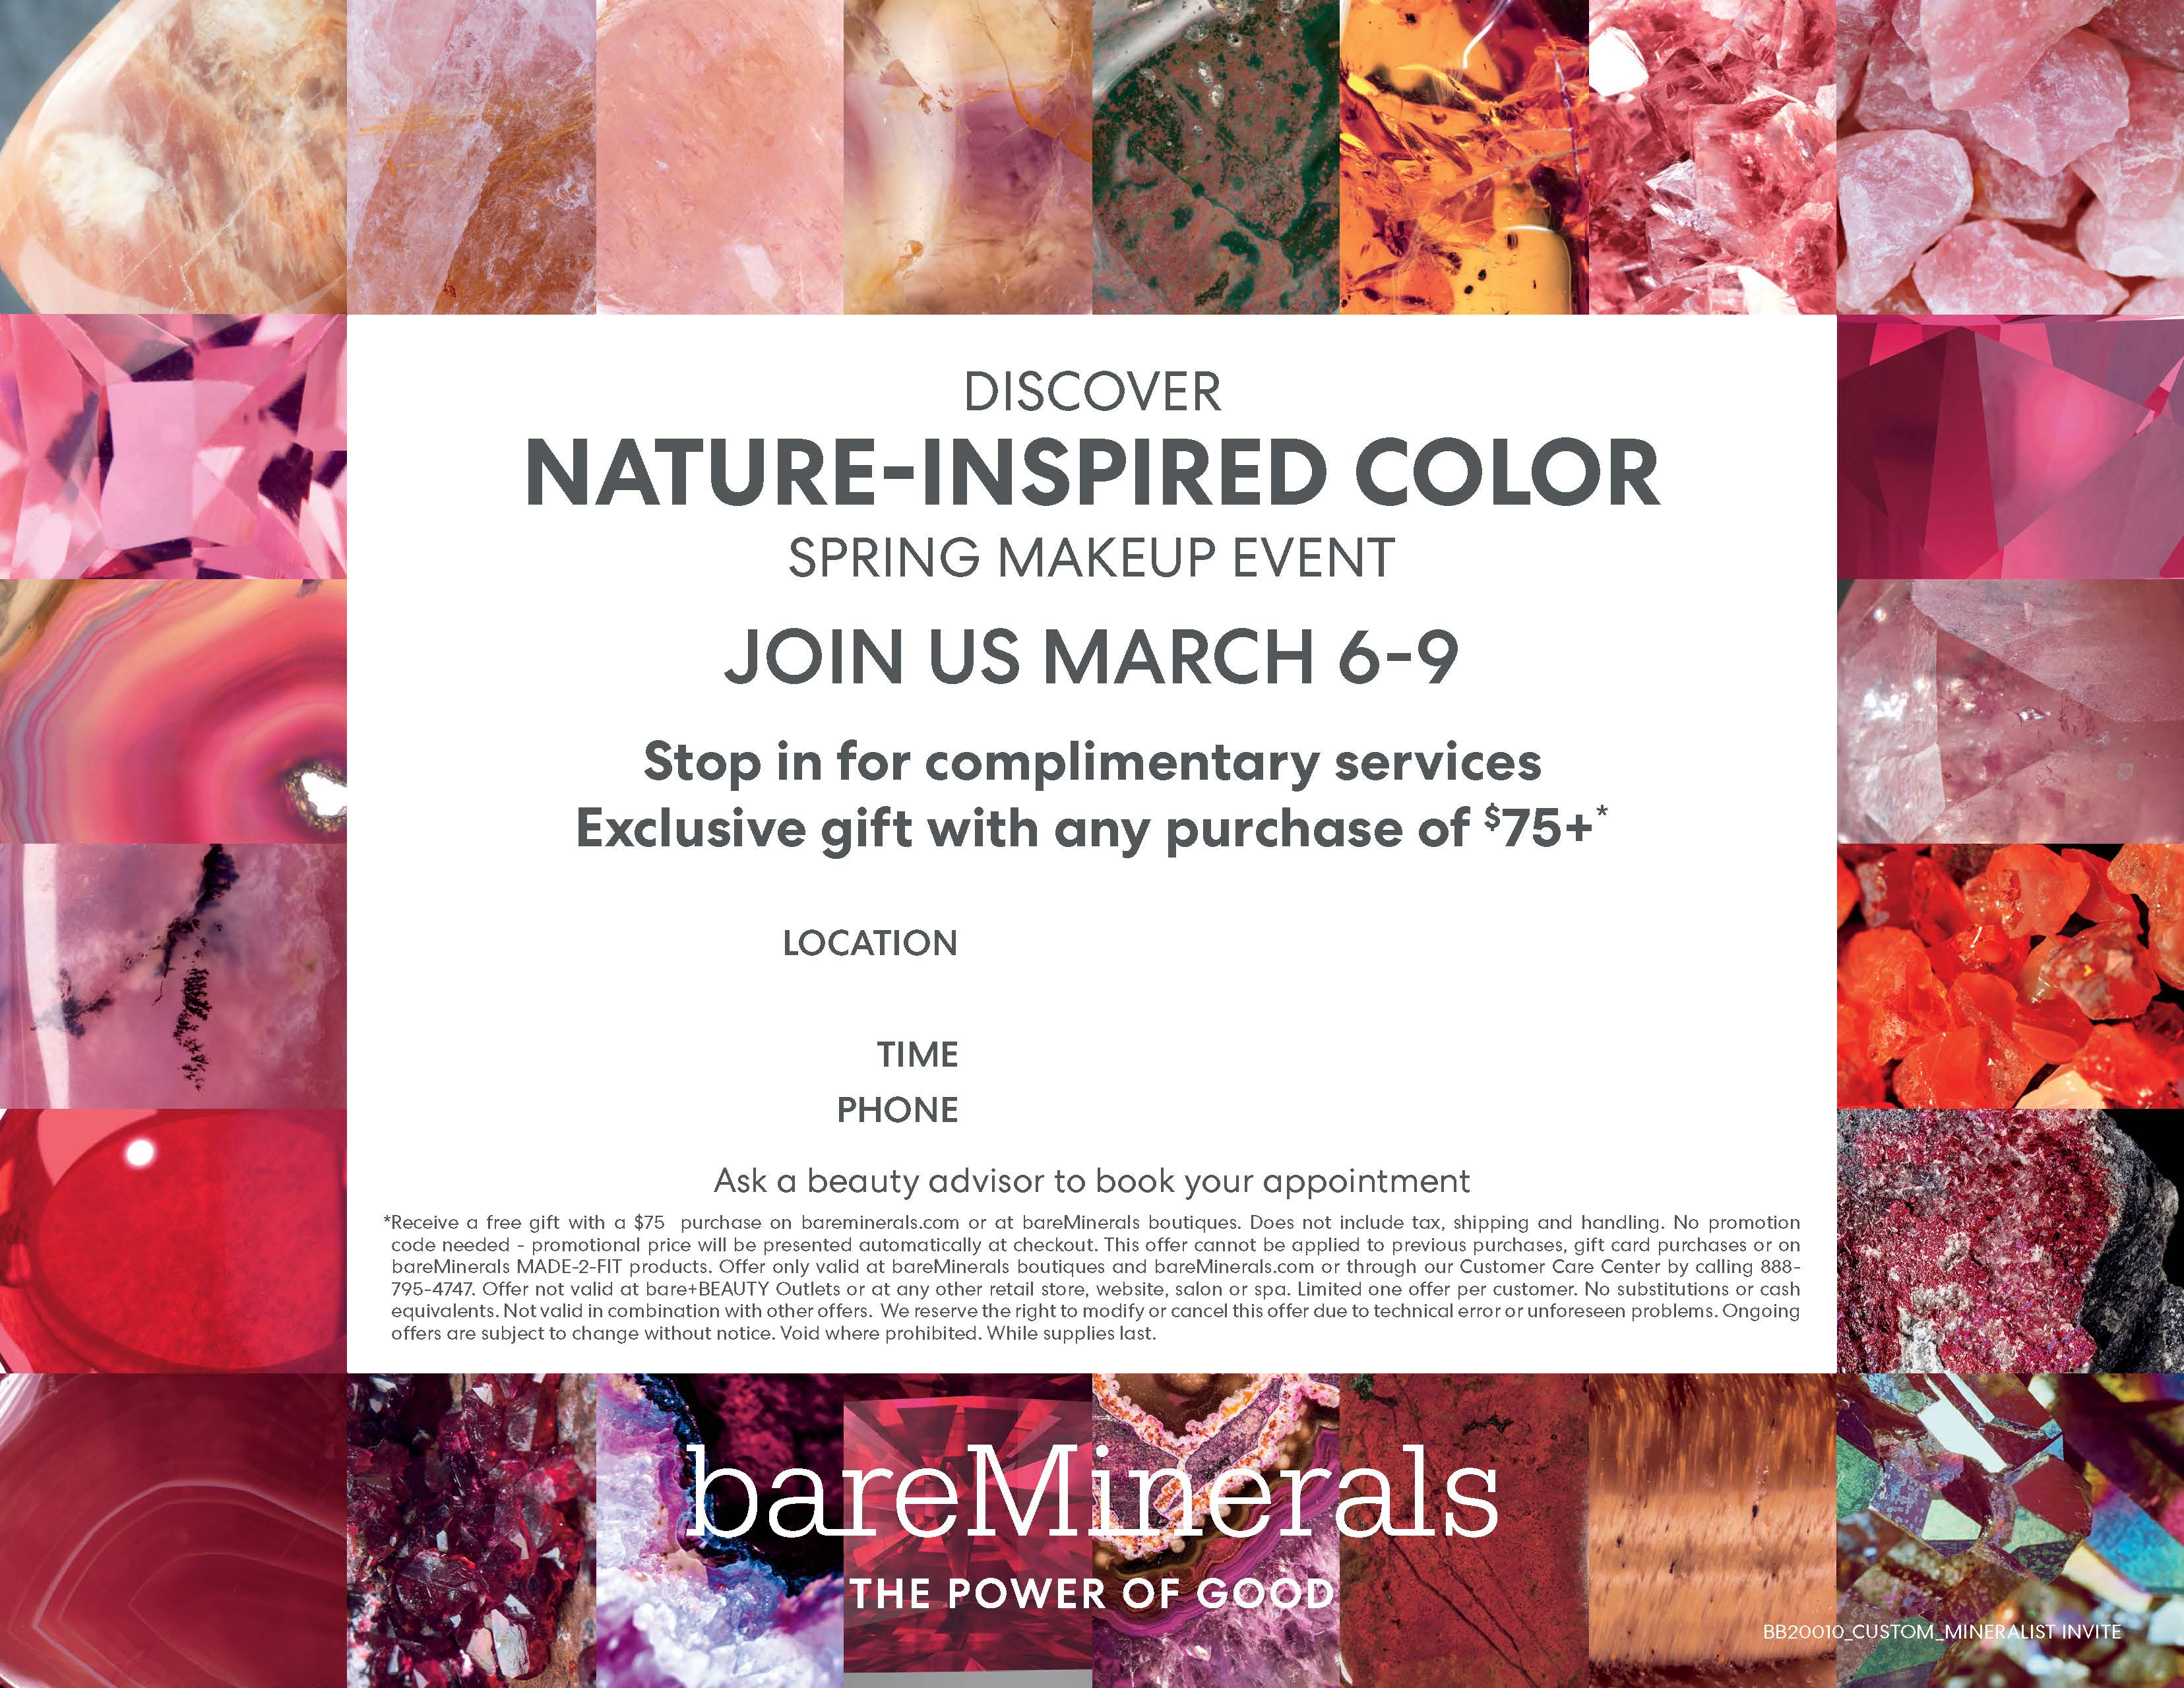 Discover NATURE-INSPIRED COLOR